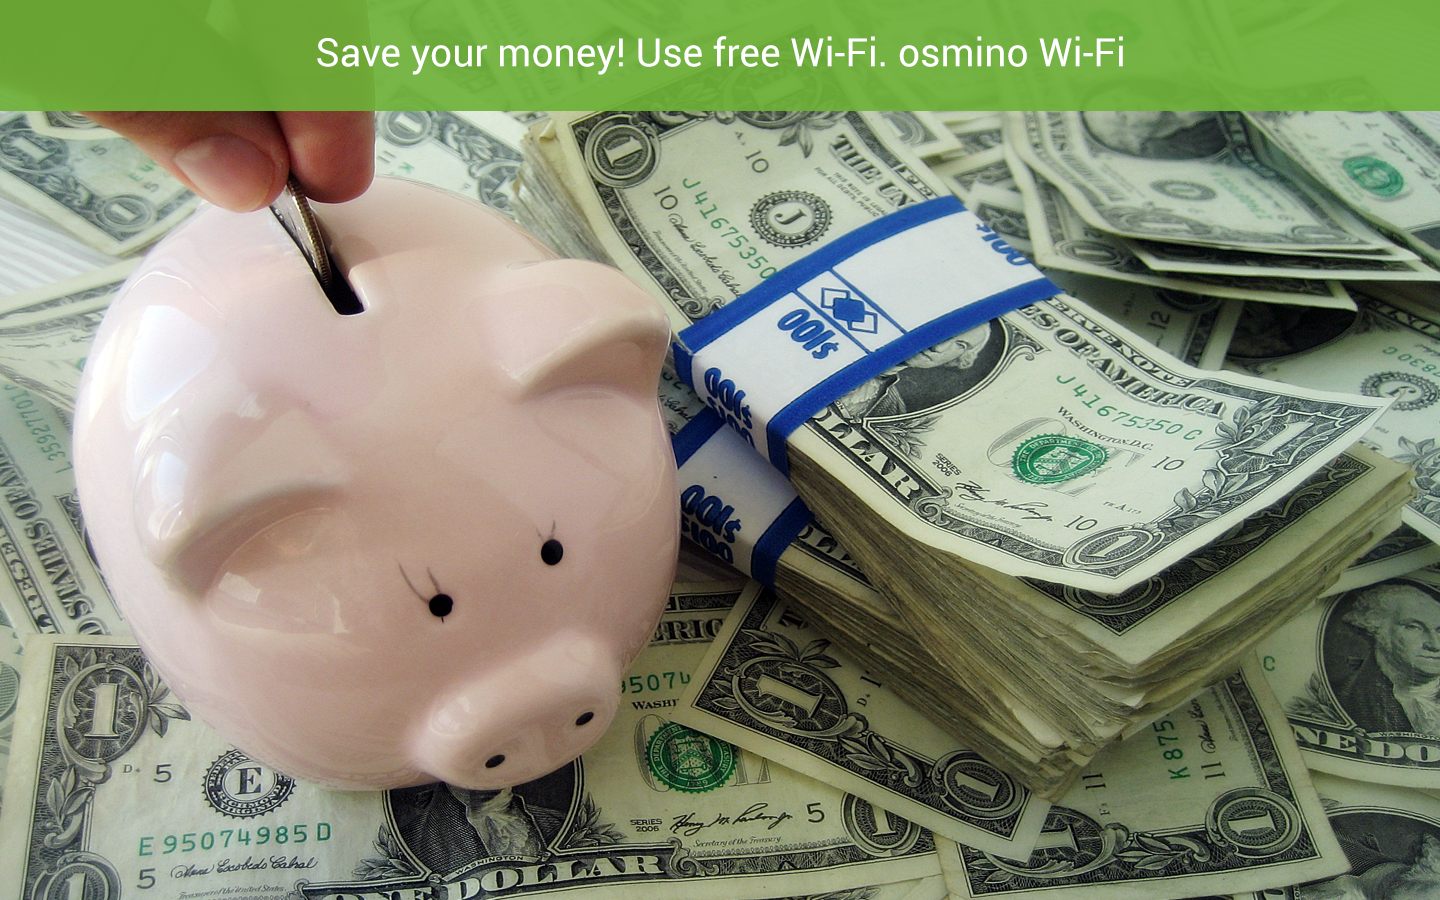 osmino Wi-Fi: free WiFi- screenshot